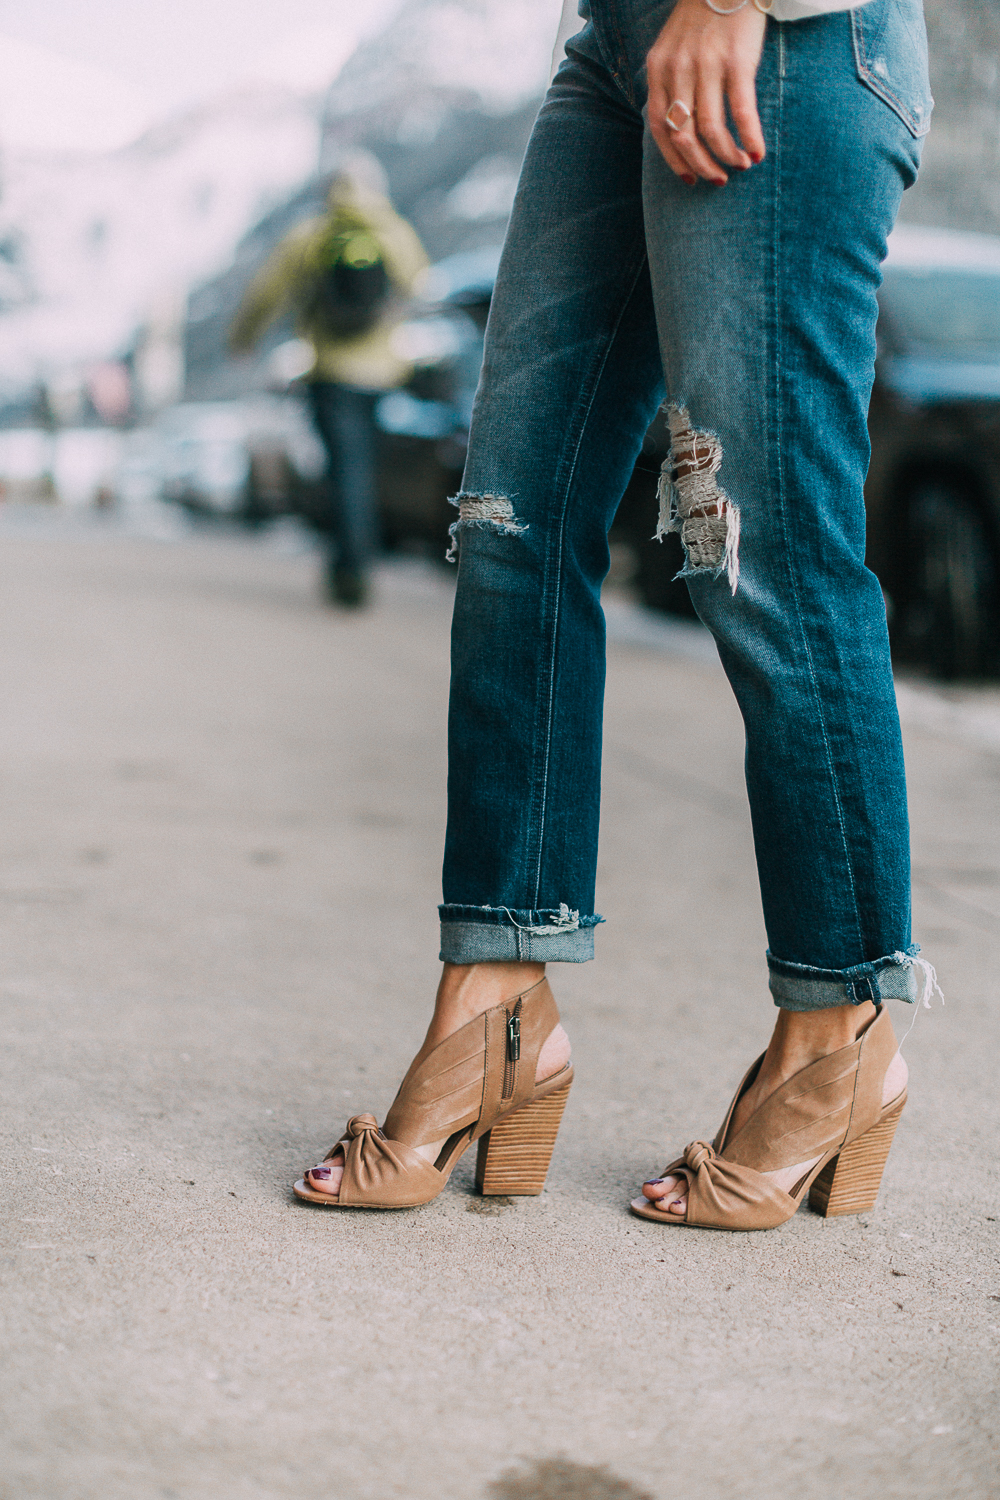 Nude Sandals Ideas and Designs